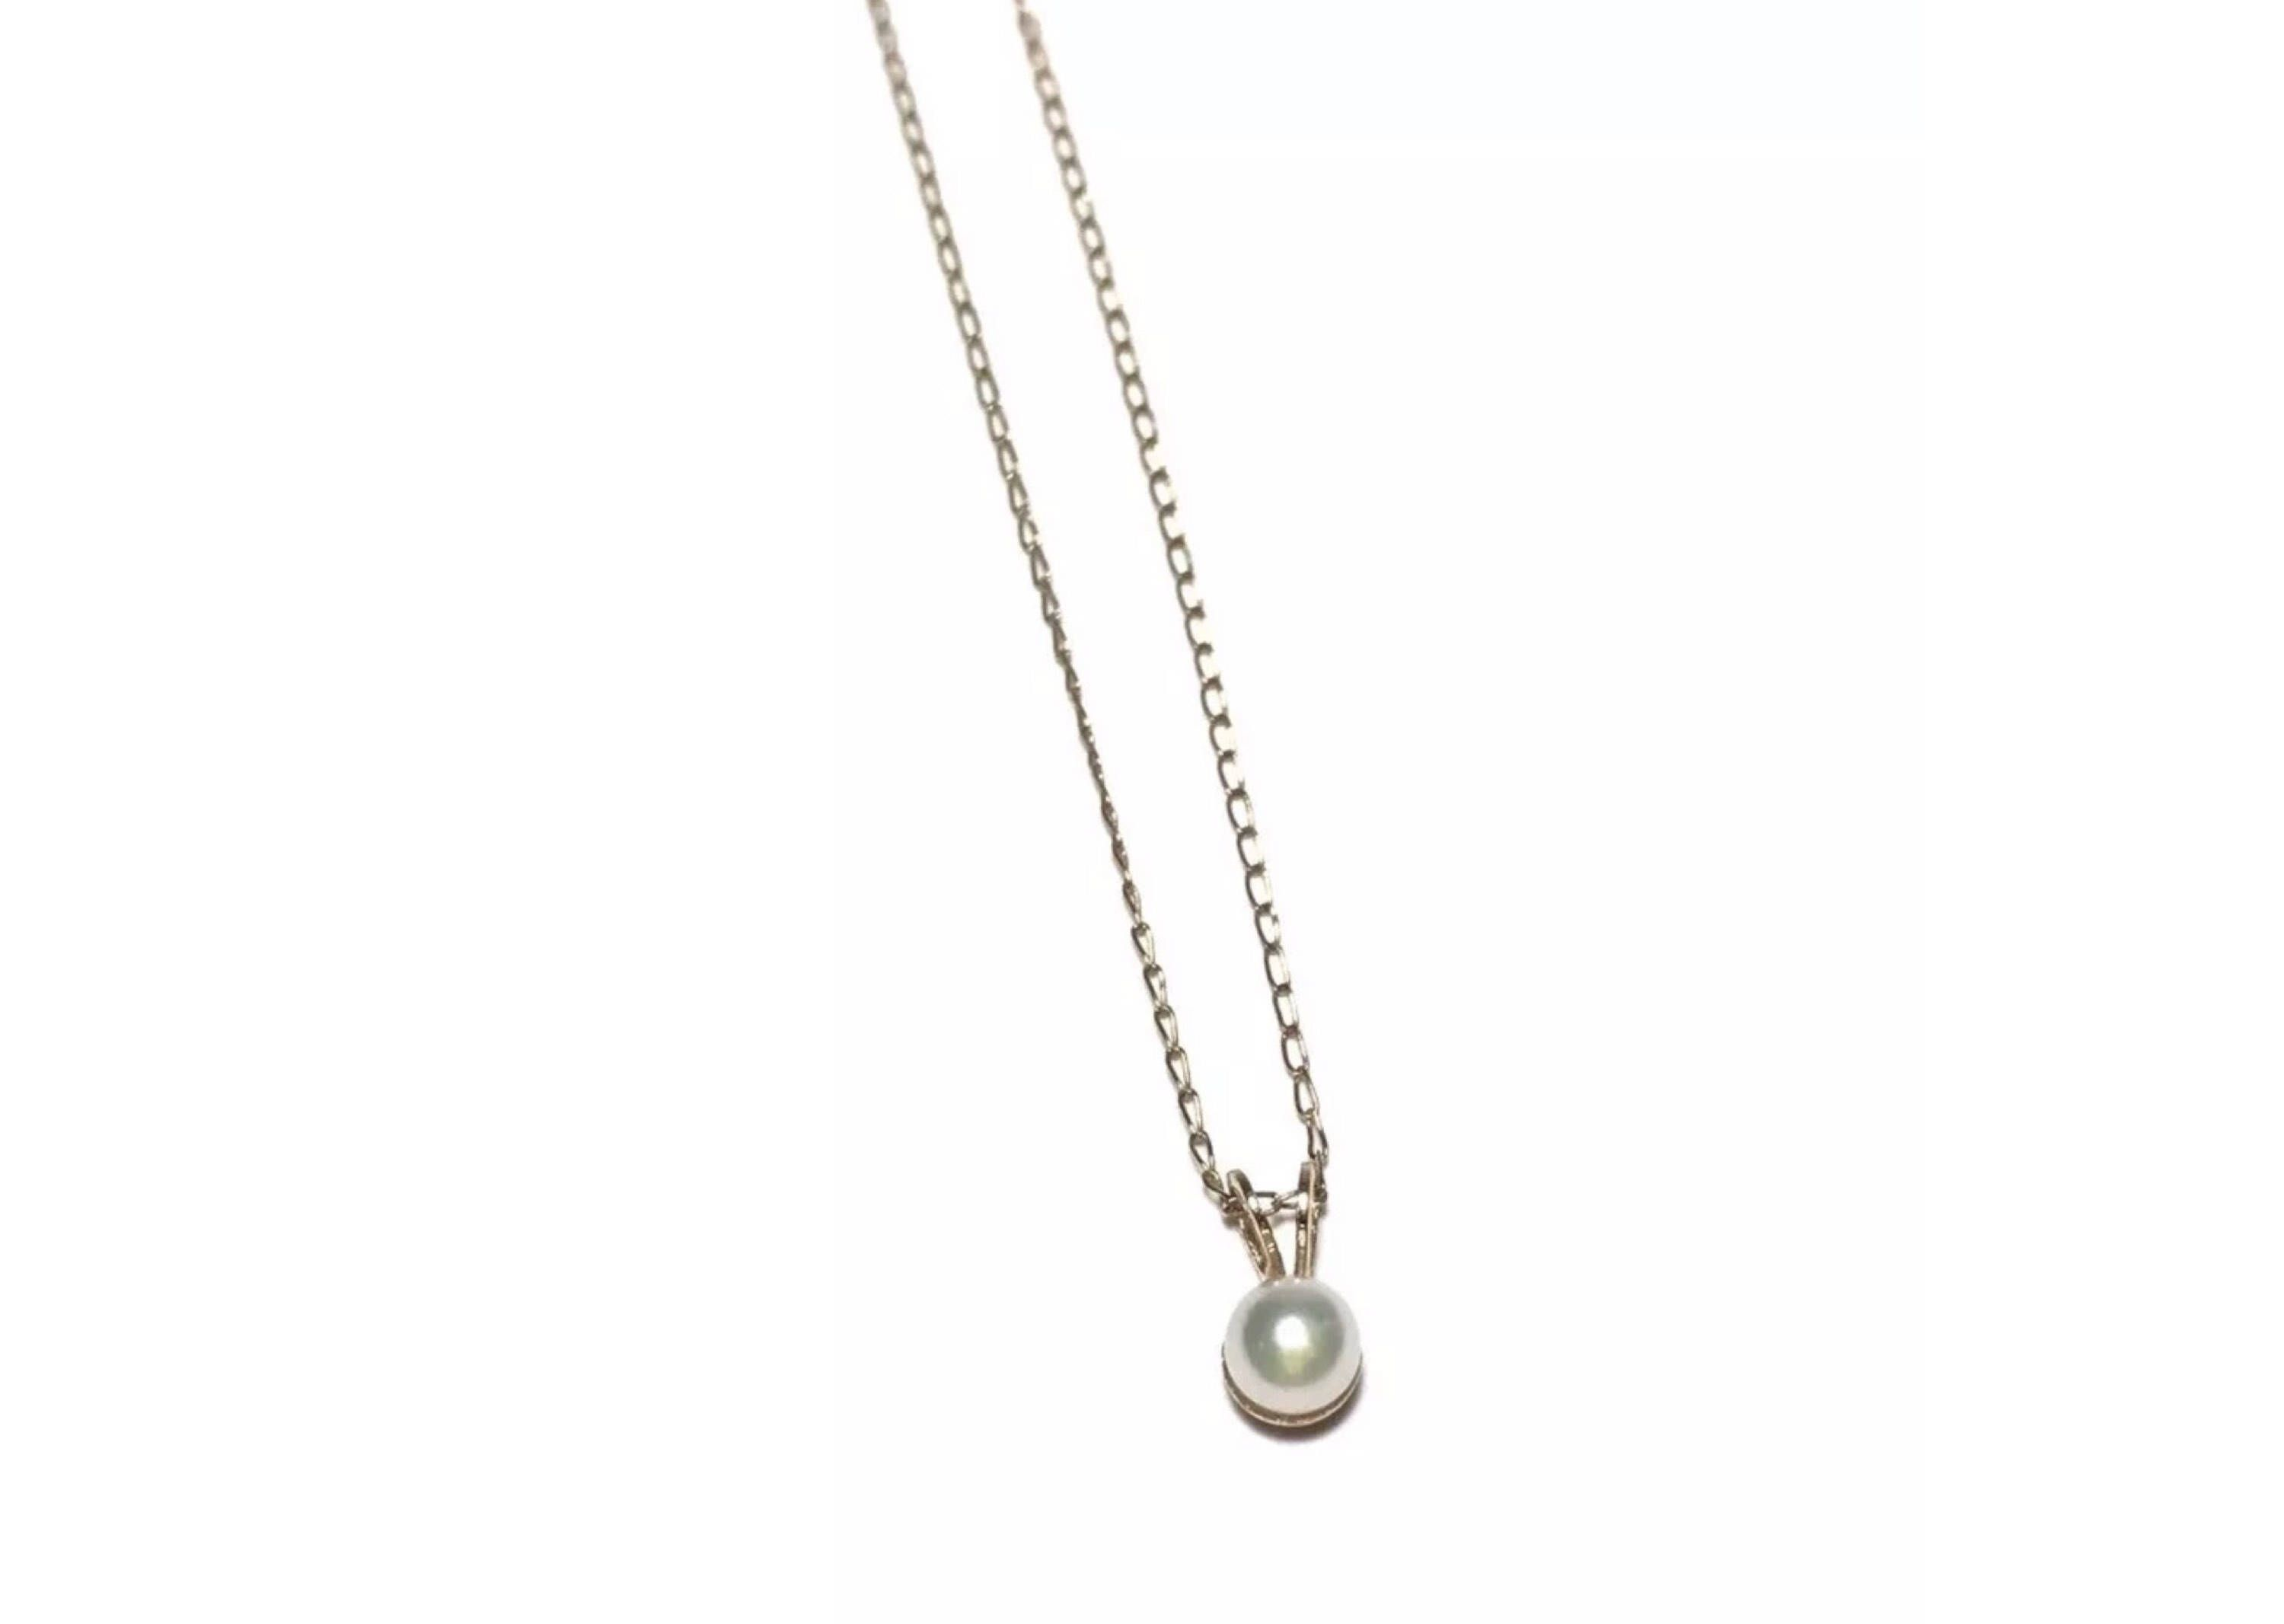 fine essential necklaces bradby pearl shop crop handmade simple cultured pendant claudia single long